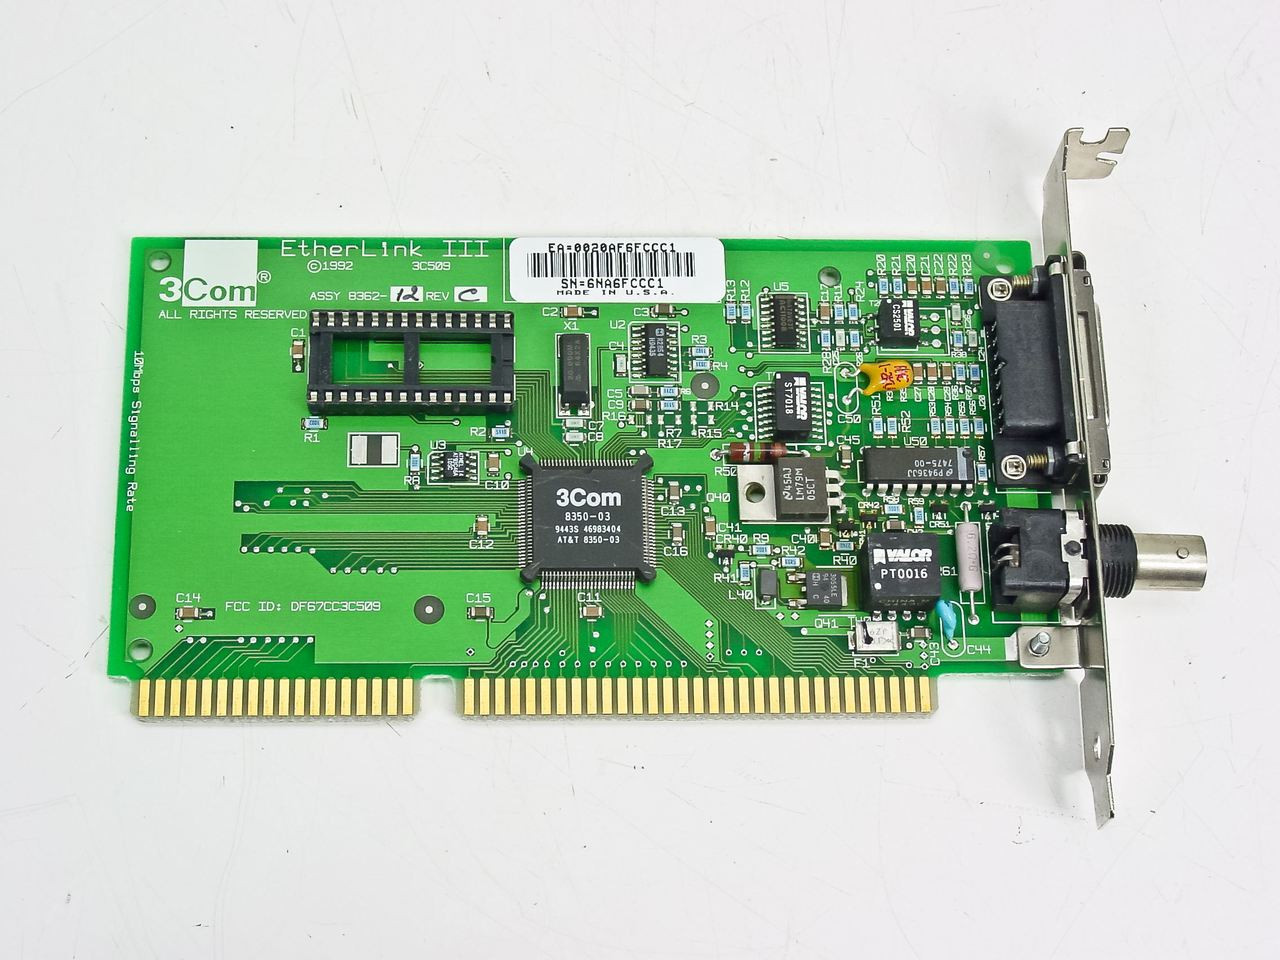 DRIVERS FOR 3COM 3C509